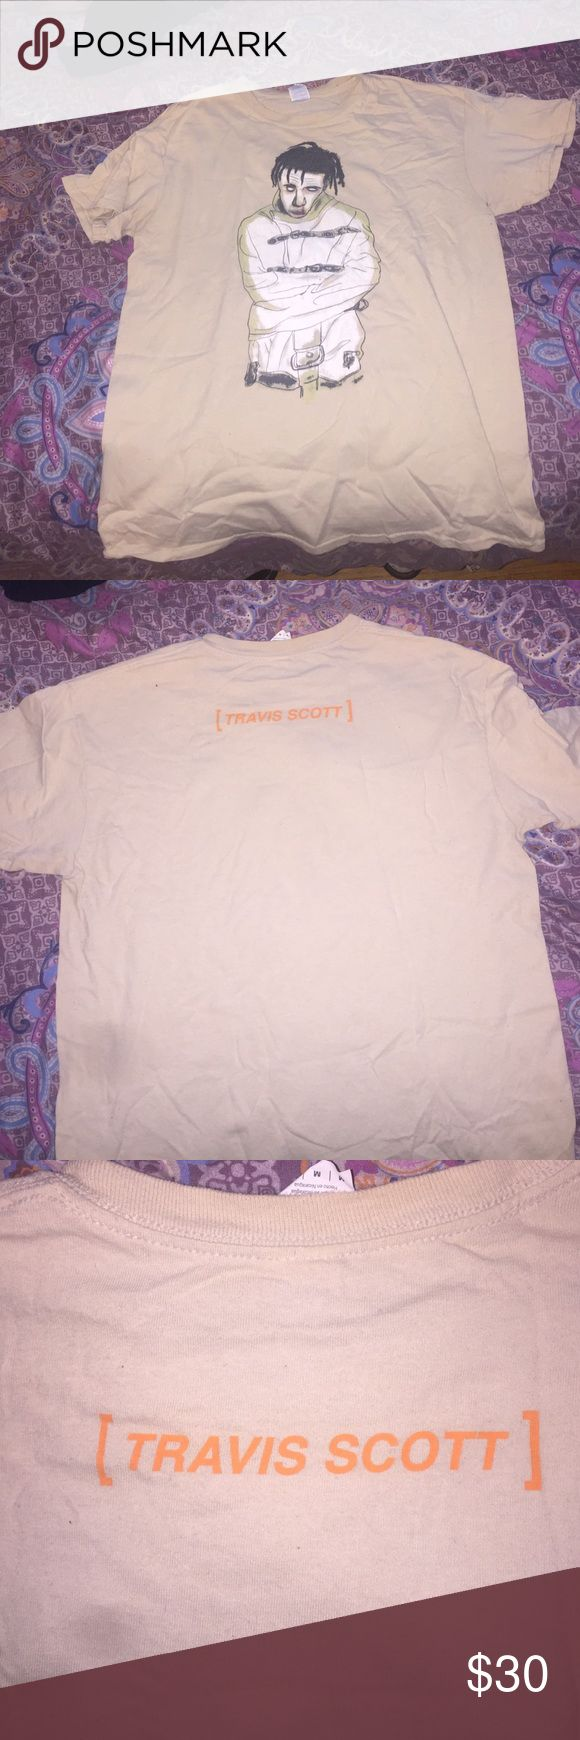 RARE Travi$ Scott Halloween Tee Rare limited edition Travis Scott Halloween Tee; purchased from a madness tour stop. Gently used and has been washed and sitting in my dresser drawer Looking to trade for Kanye St. Pablo tour merch! Serious inquires only! Travi$ Scott Shirts Tees - Short Sleeve